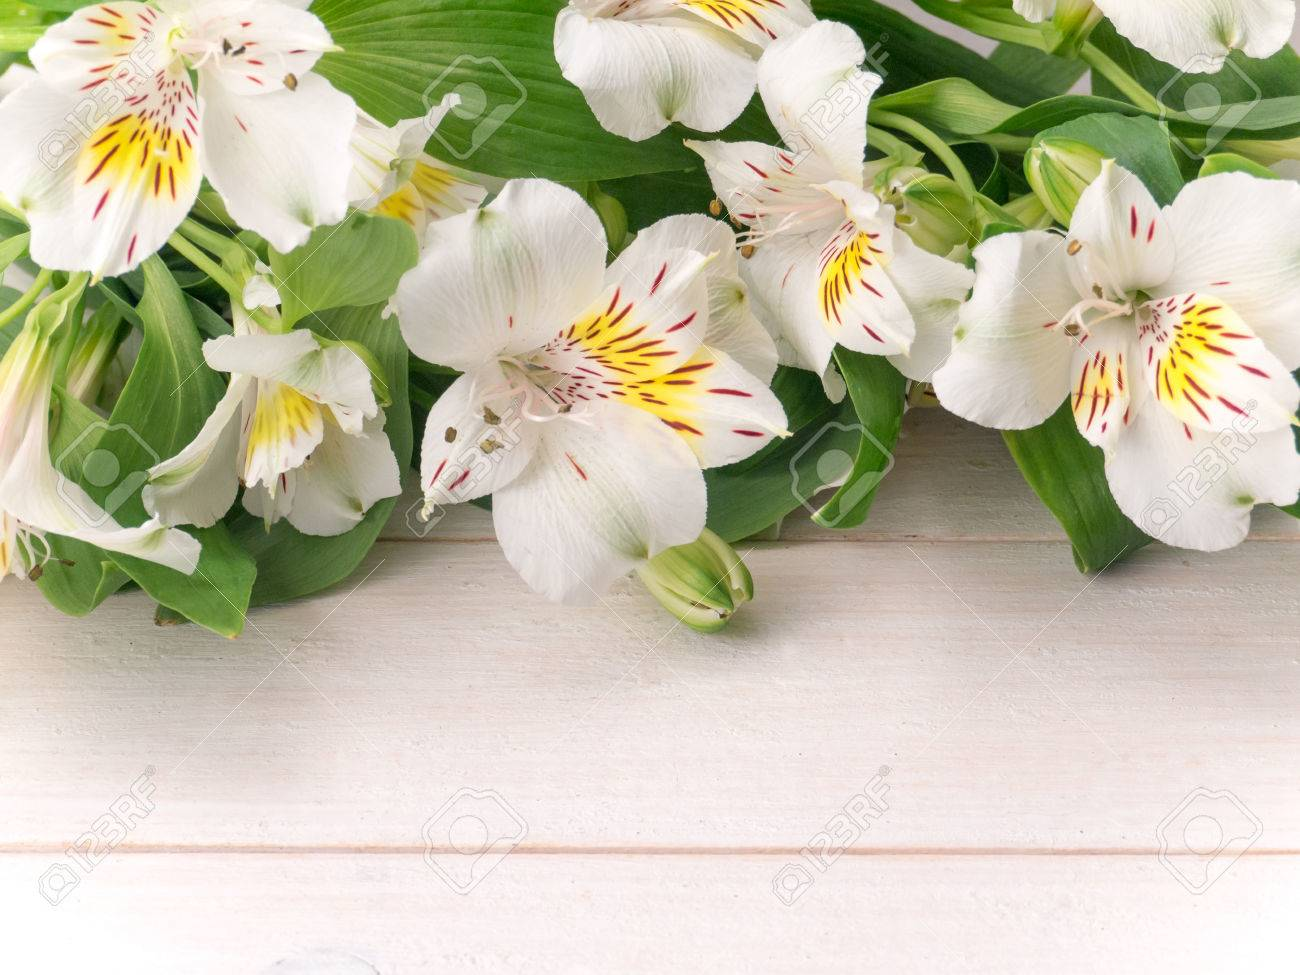 White alstroemeria or peruvian lily flowers on the wooden planks stock photo white alstroemeria or peruvian lily flowers on the wooden planks izmirmasajfo